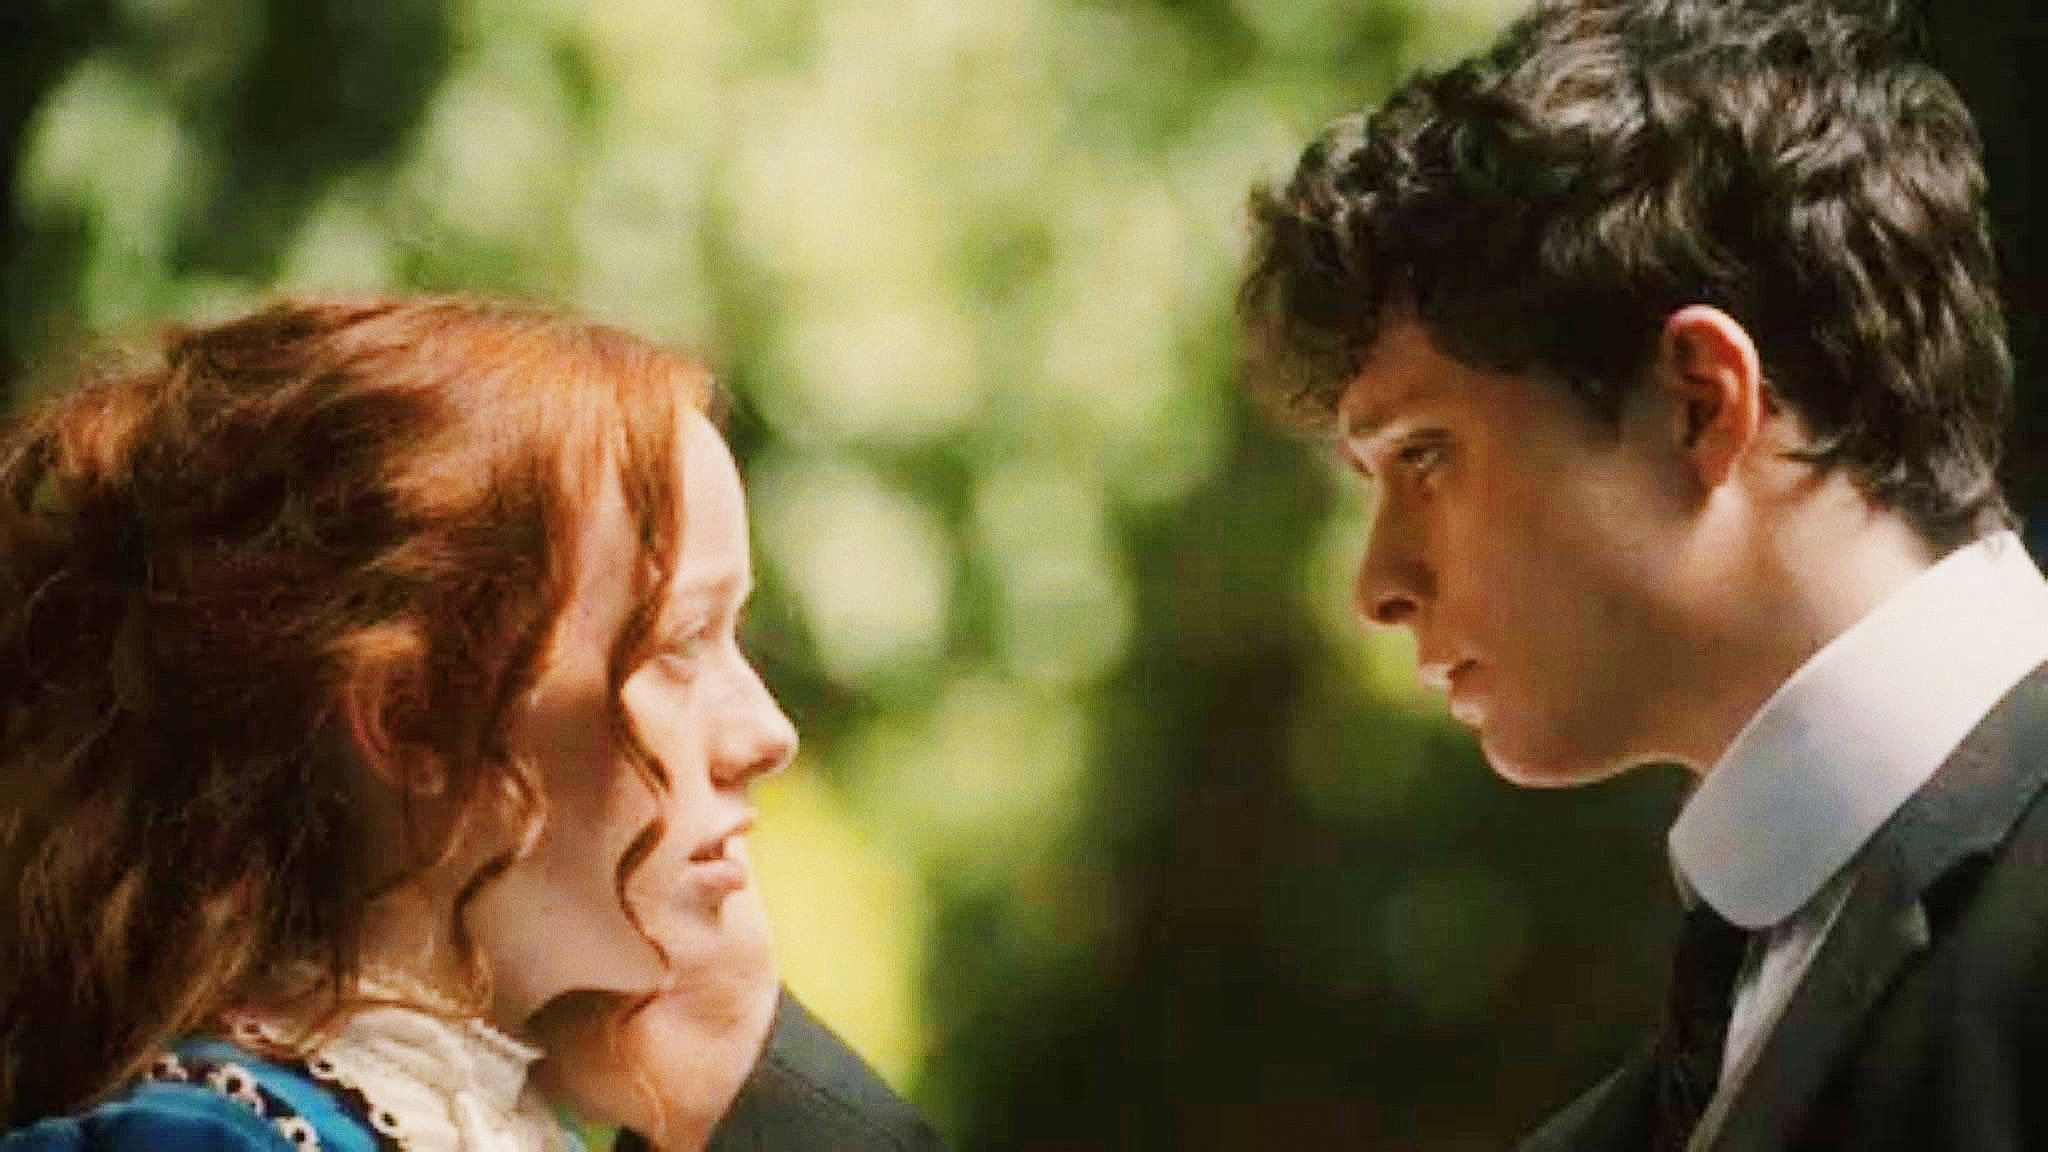 Their First Kiss With Images Gilbert Blythe Gilbert And